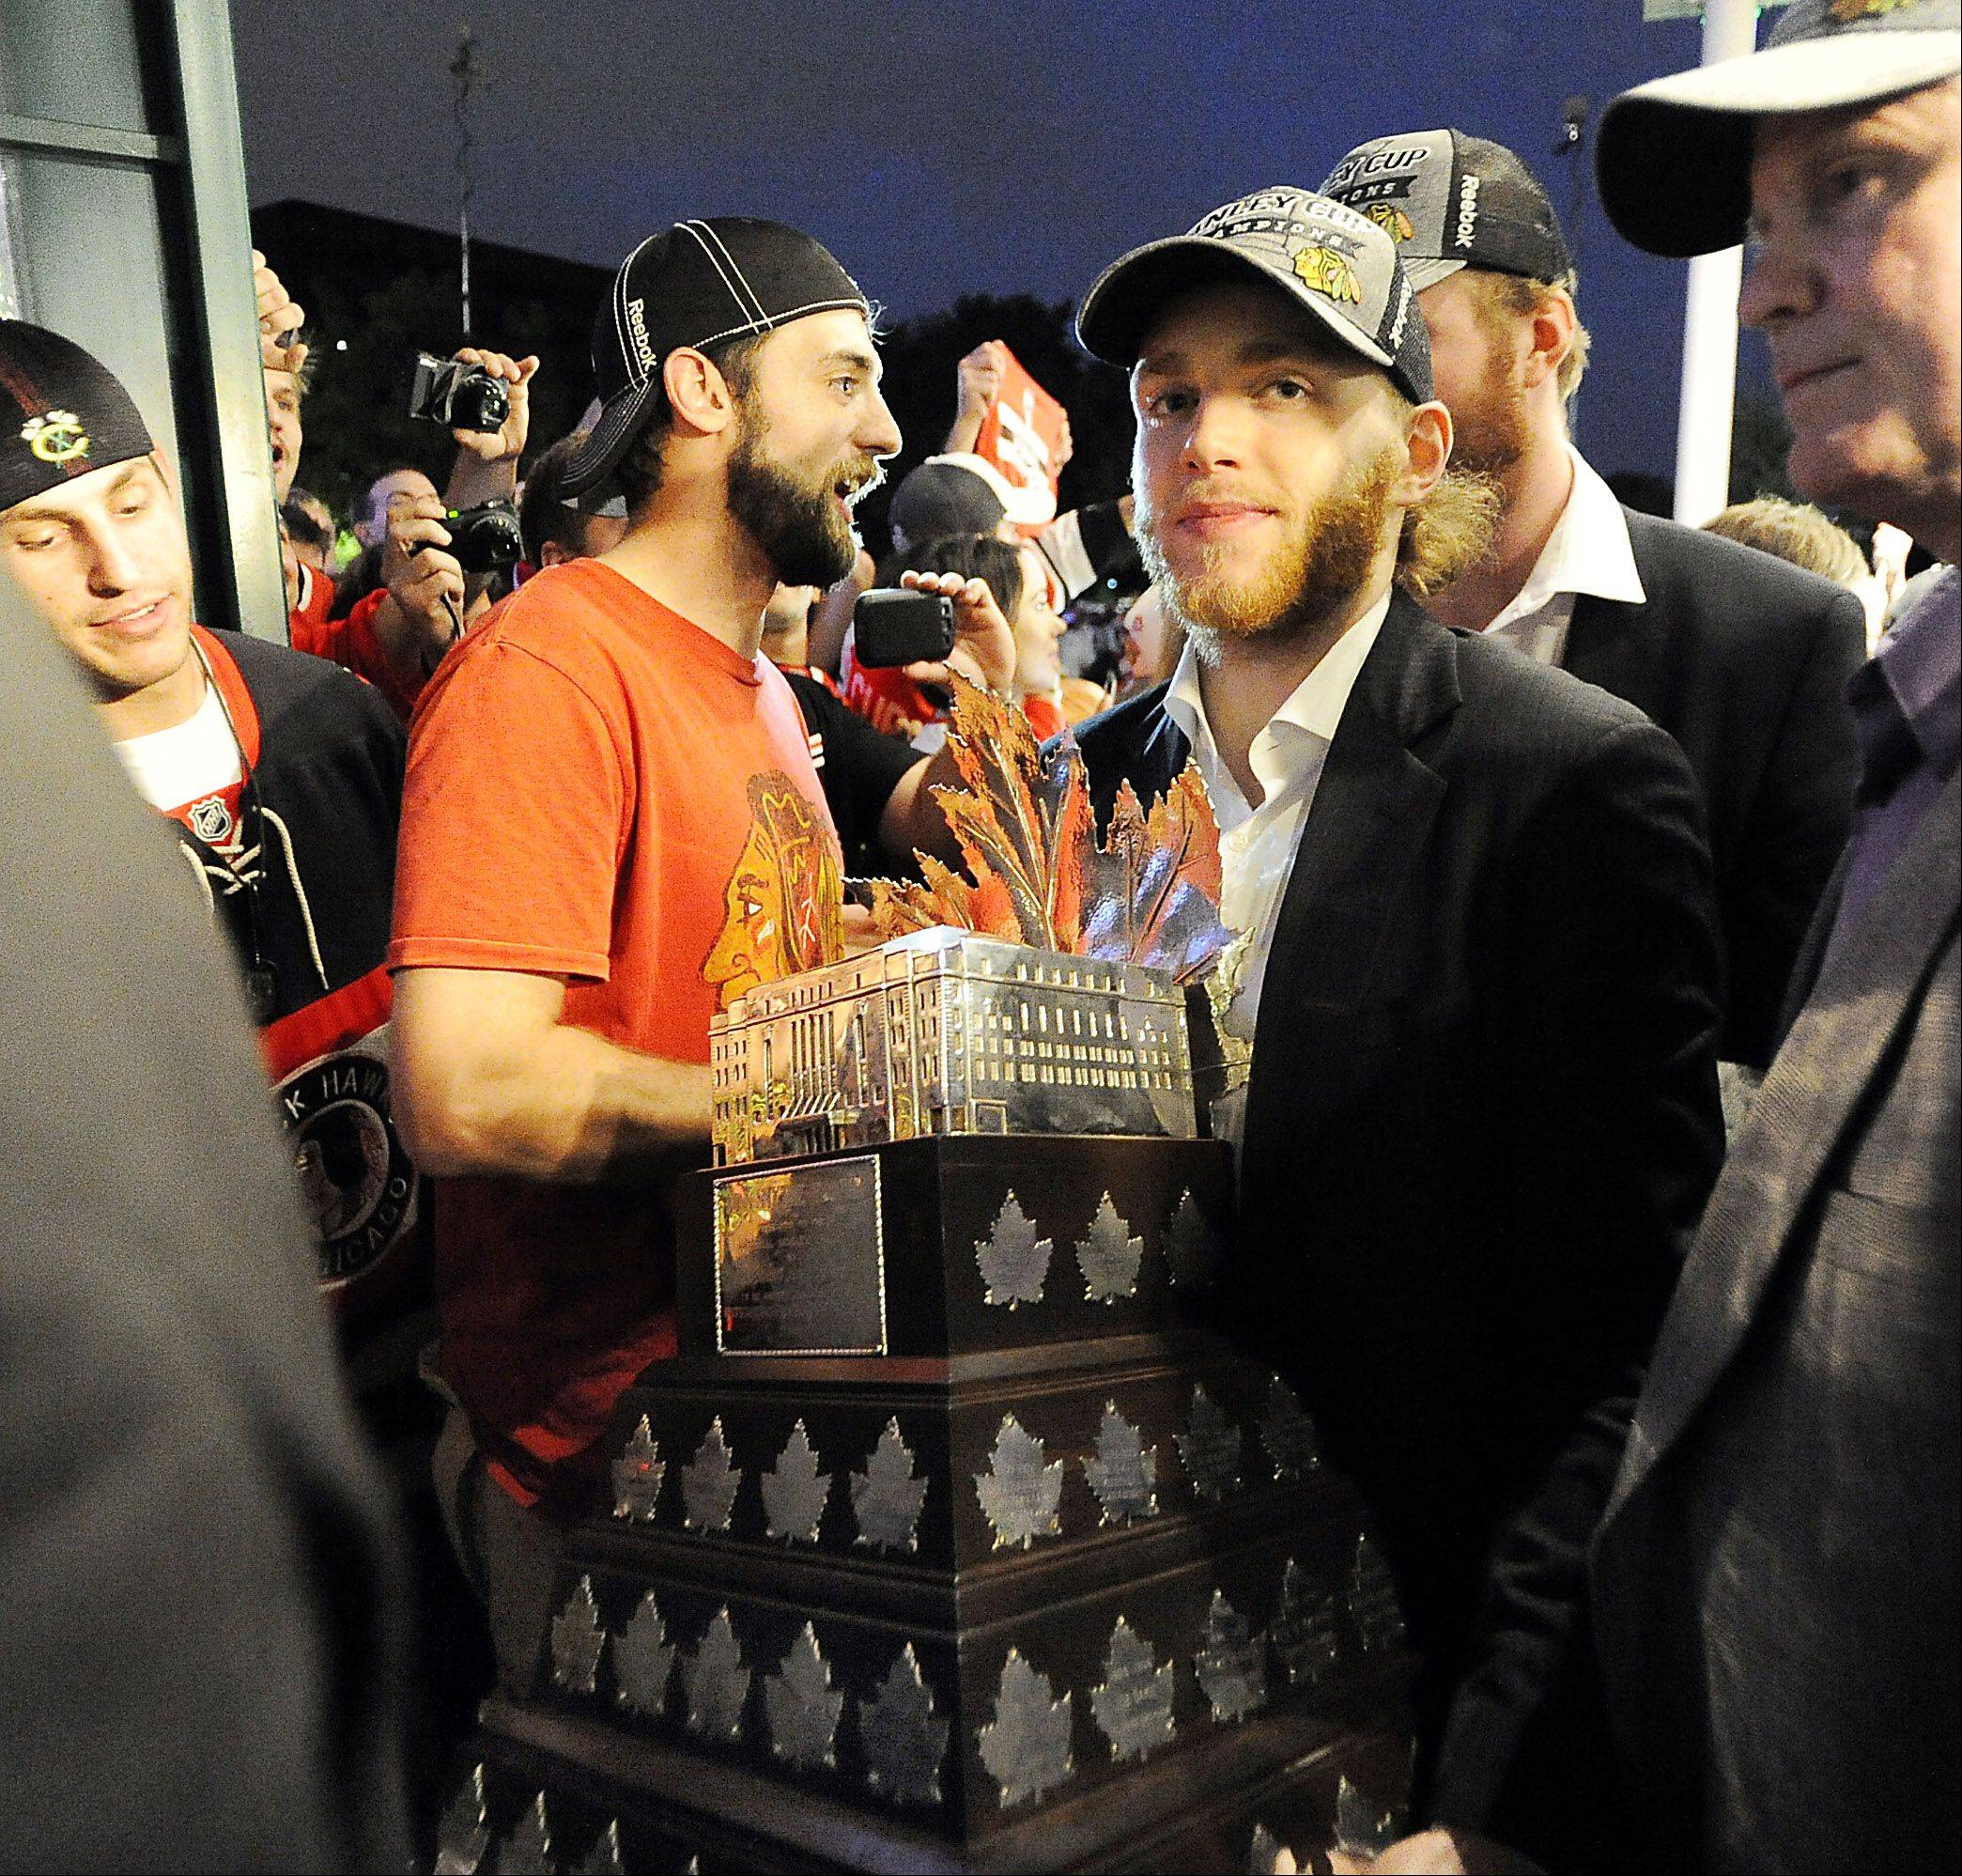 Patrick Kane carries the Conn Smythe Trophy as MVP of the playoffs into Harry Caray's restaurant in Rosemont early Tuesday morning after winning the Stanley Cup championship.